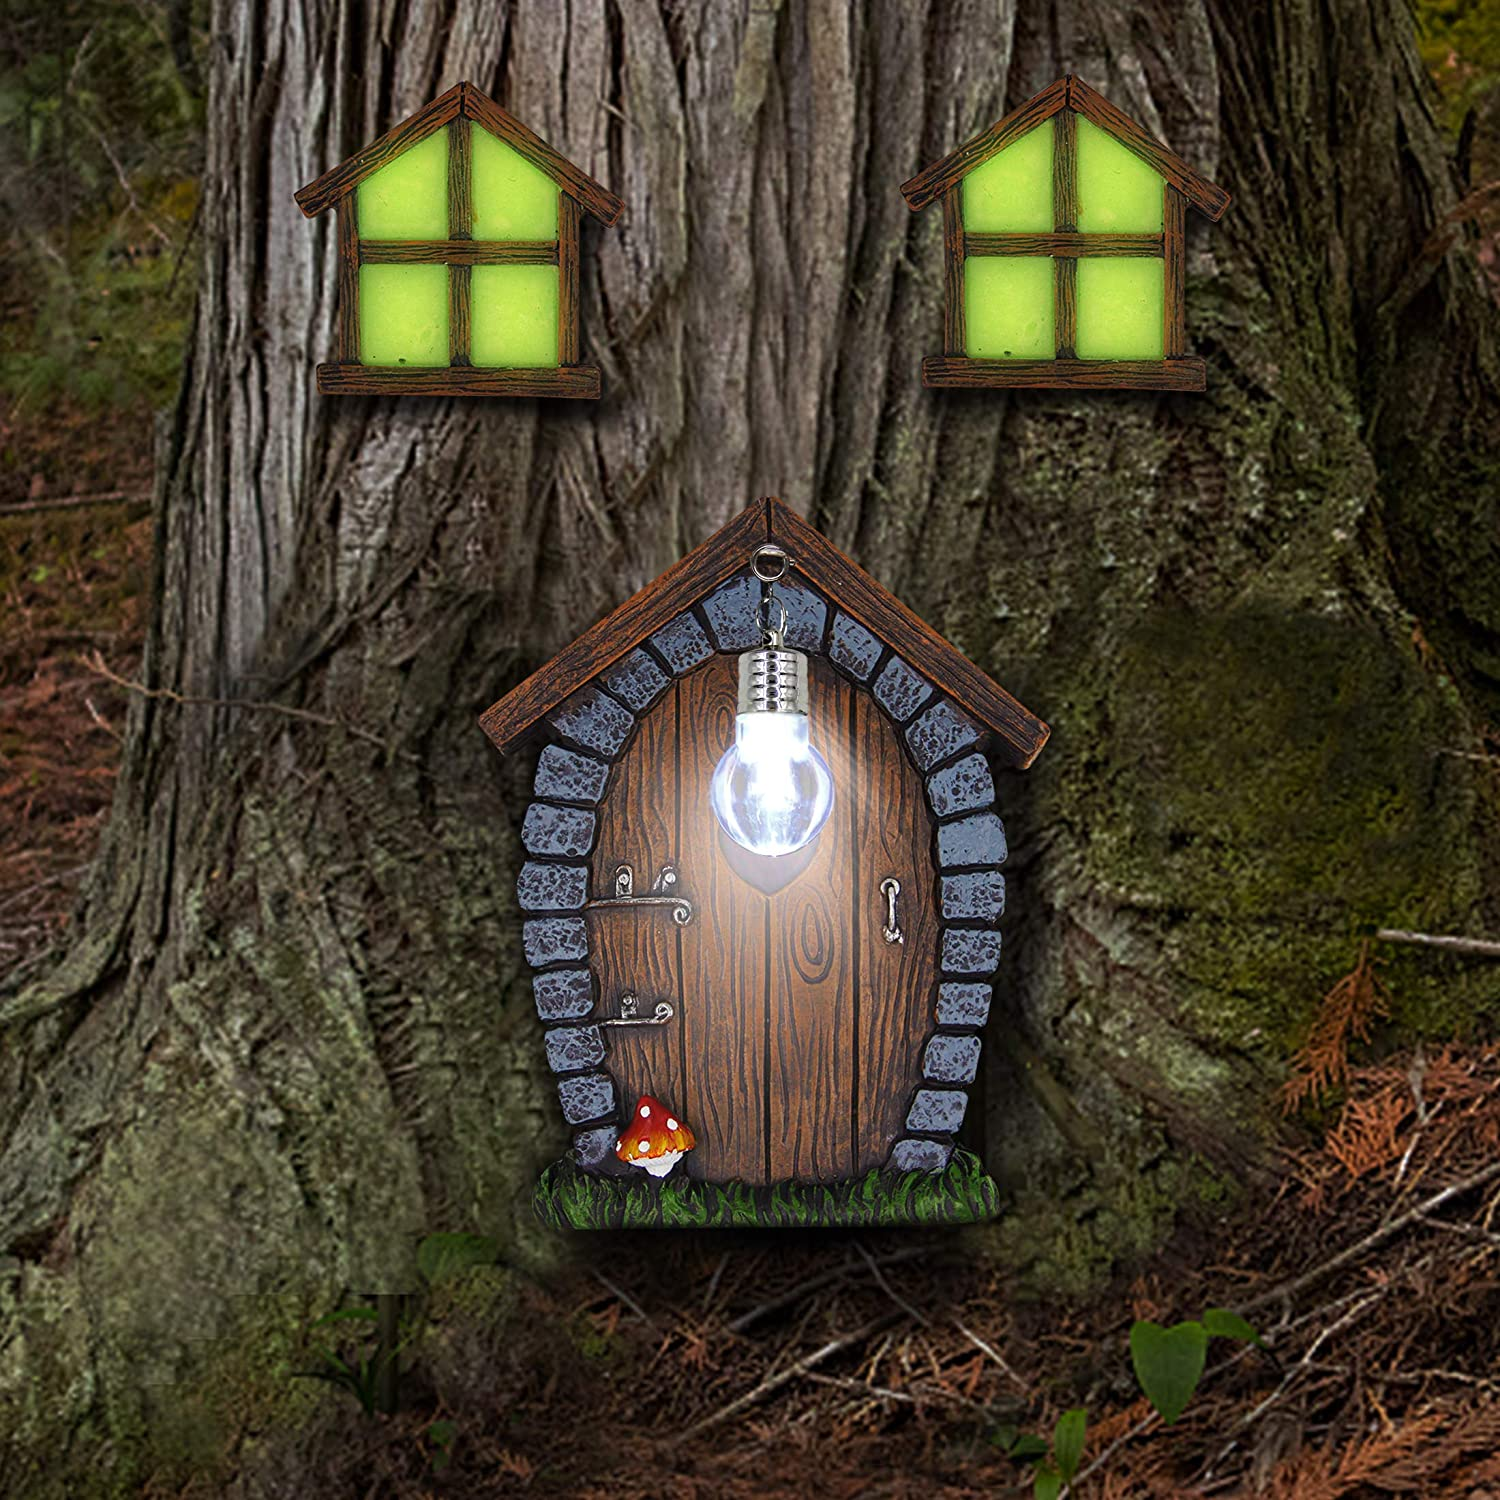 Juegoal Fairy Gnome Home Miniature Window and Door with Litter lamp for Trees Decoration, Glow in Dark Fairies Sleeping Door and Windows, Yard Art Garden Sculpture, Lawn Ornament Décor